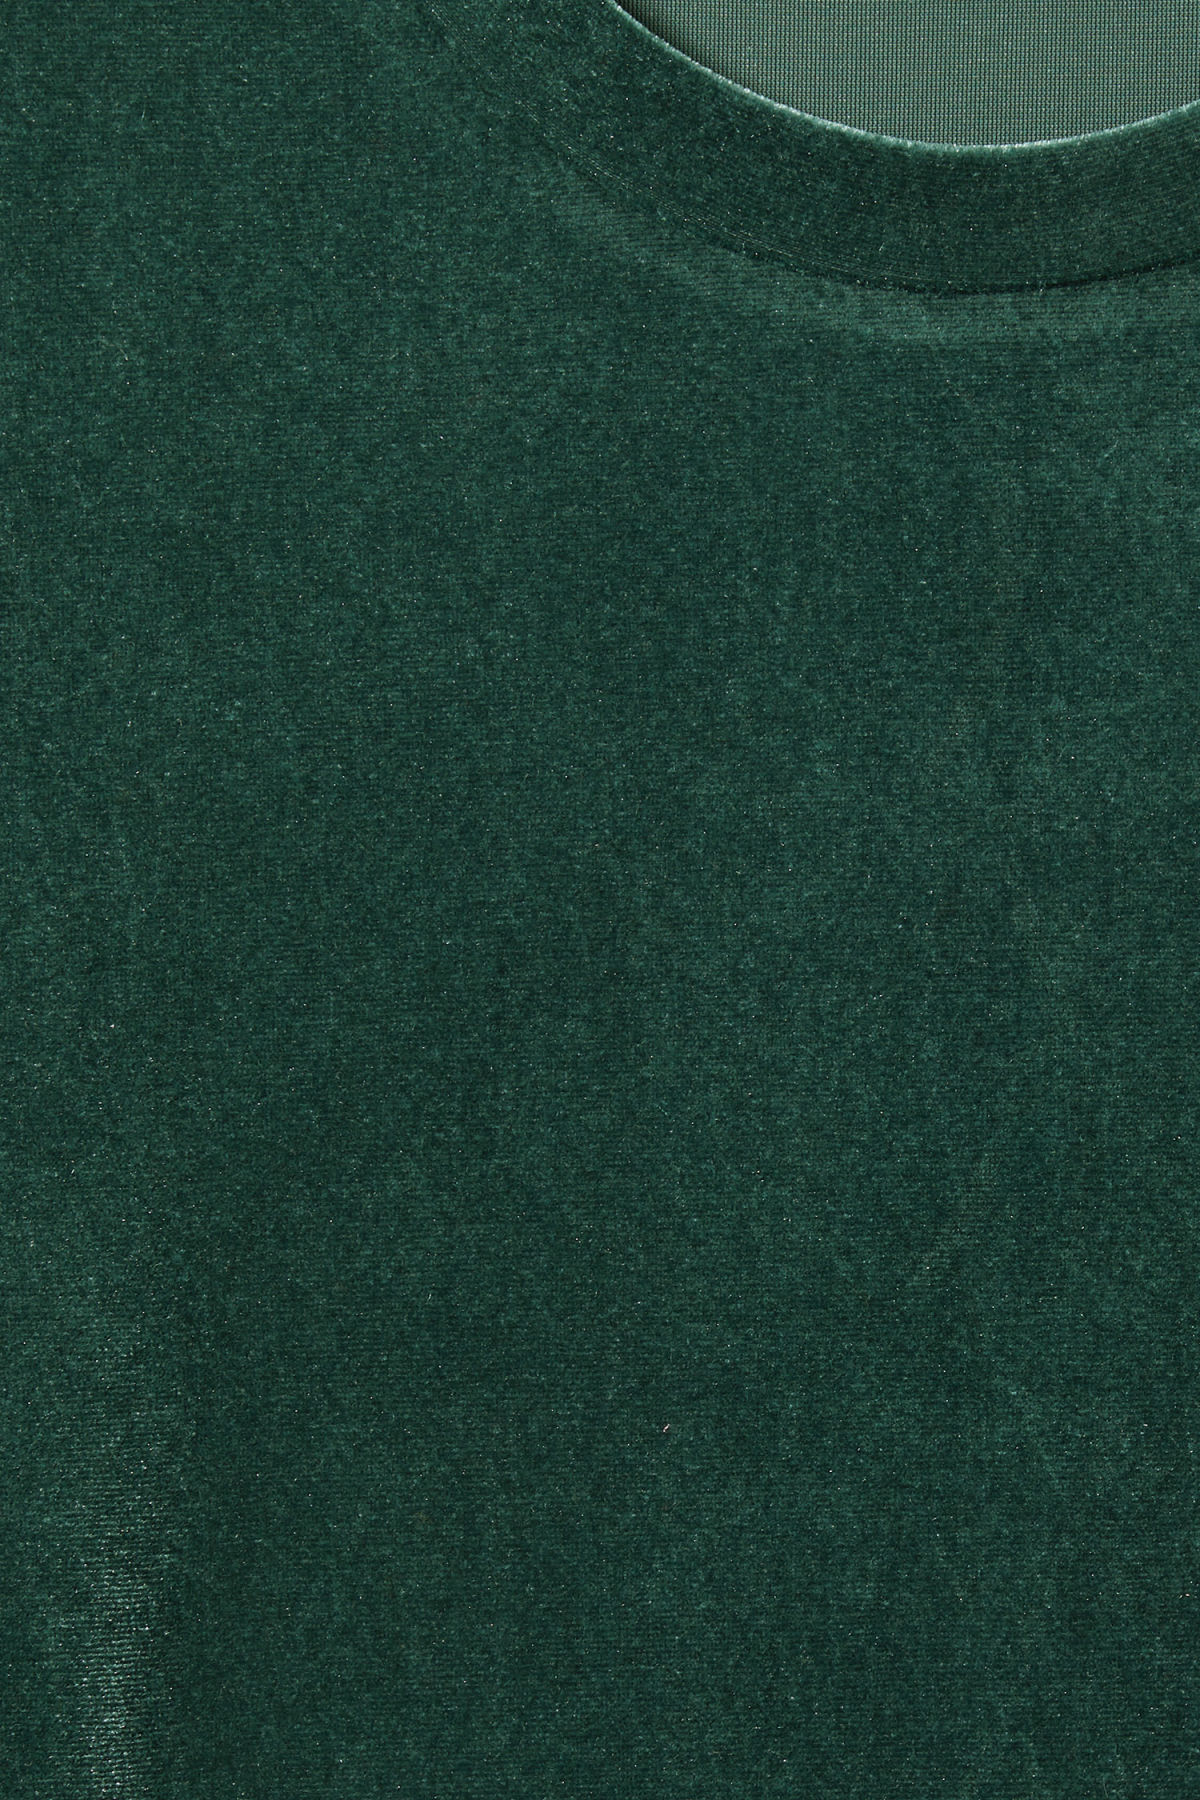 Detailed image of Weekday fray dress in green